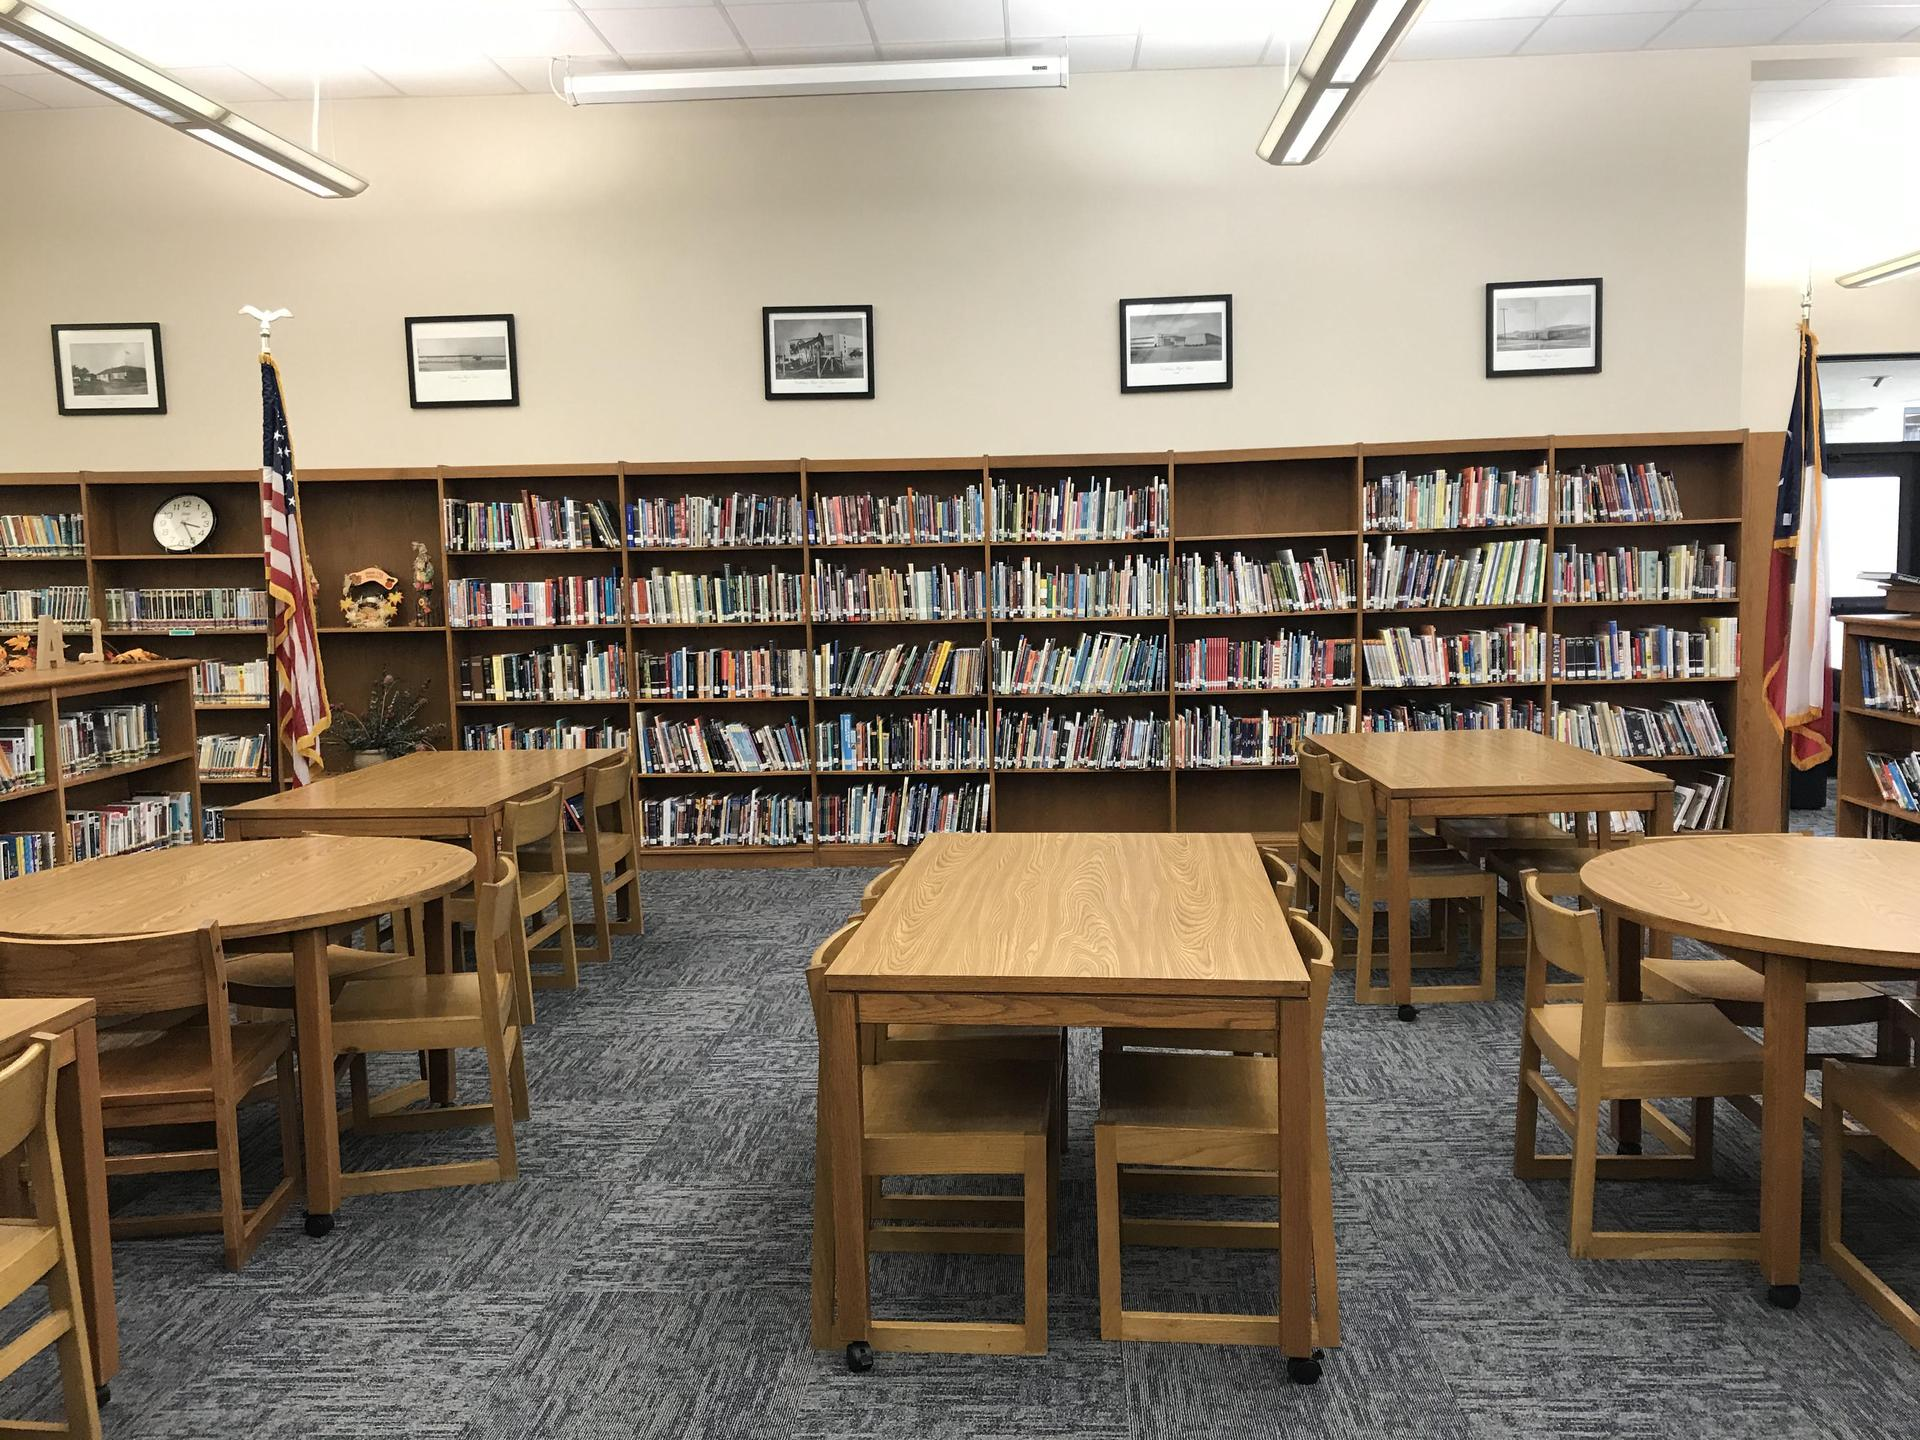 Class area of the library